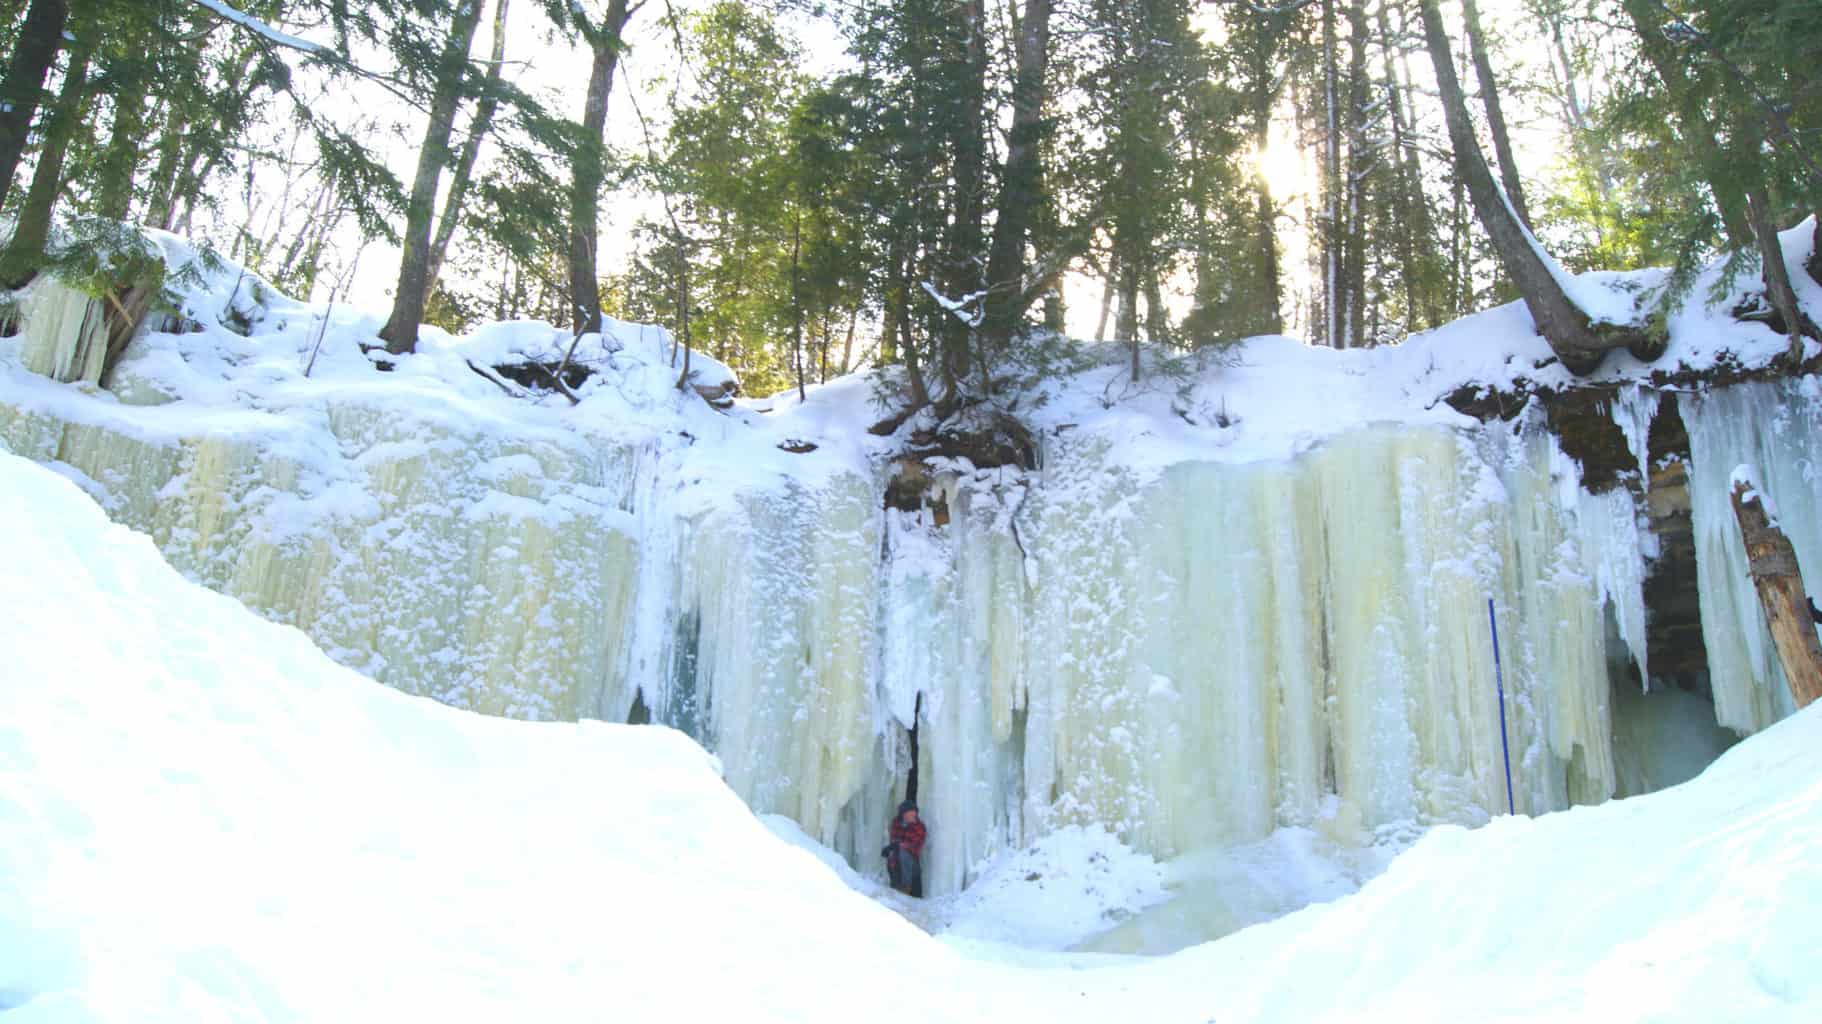 Ice Caves scaled Eben Ice Caves are a Winter Must-See Upper Peninsula Wonder in Michigan